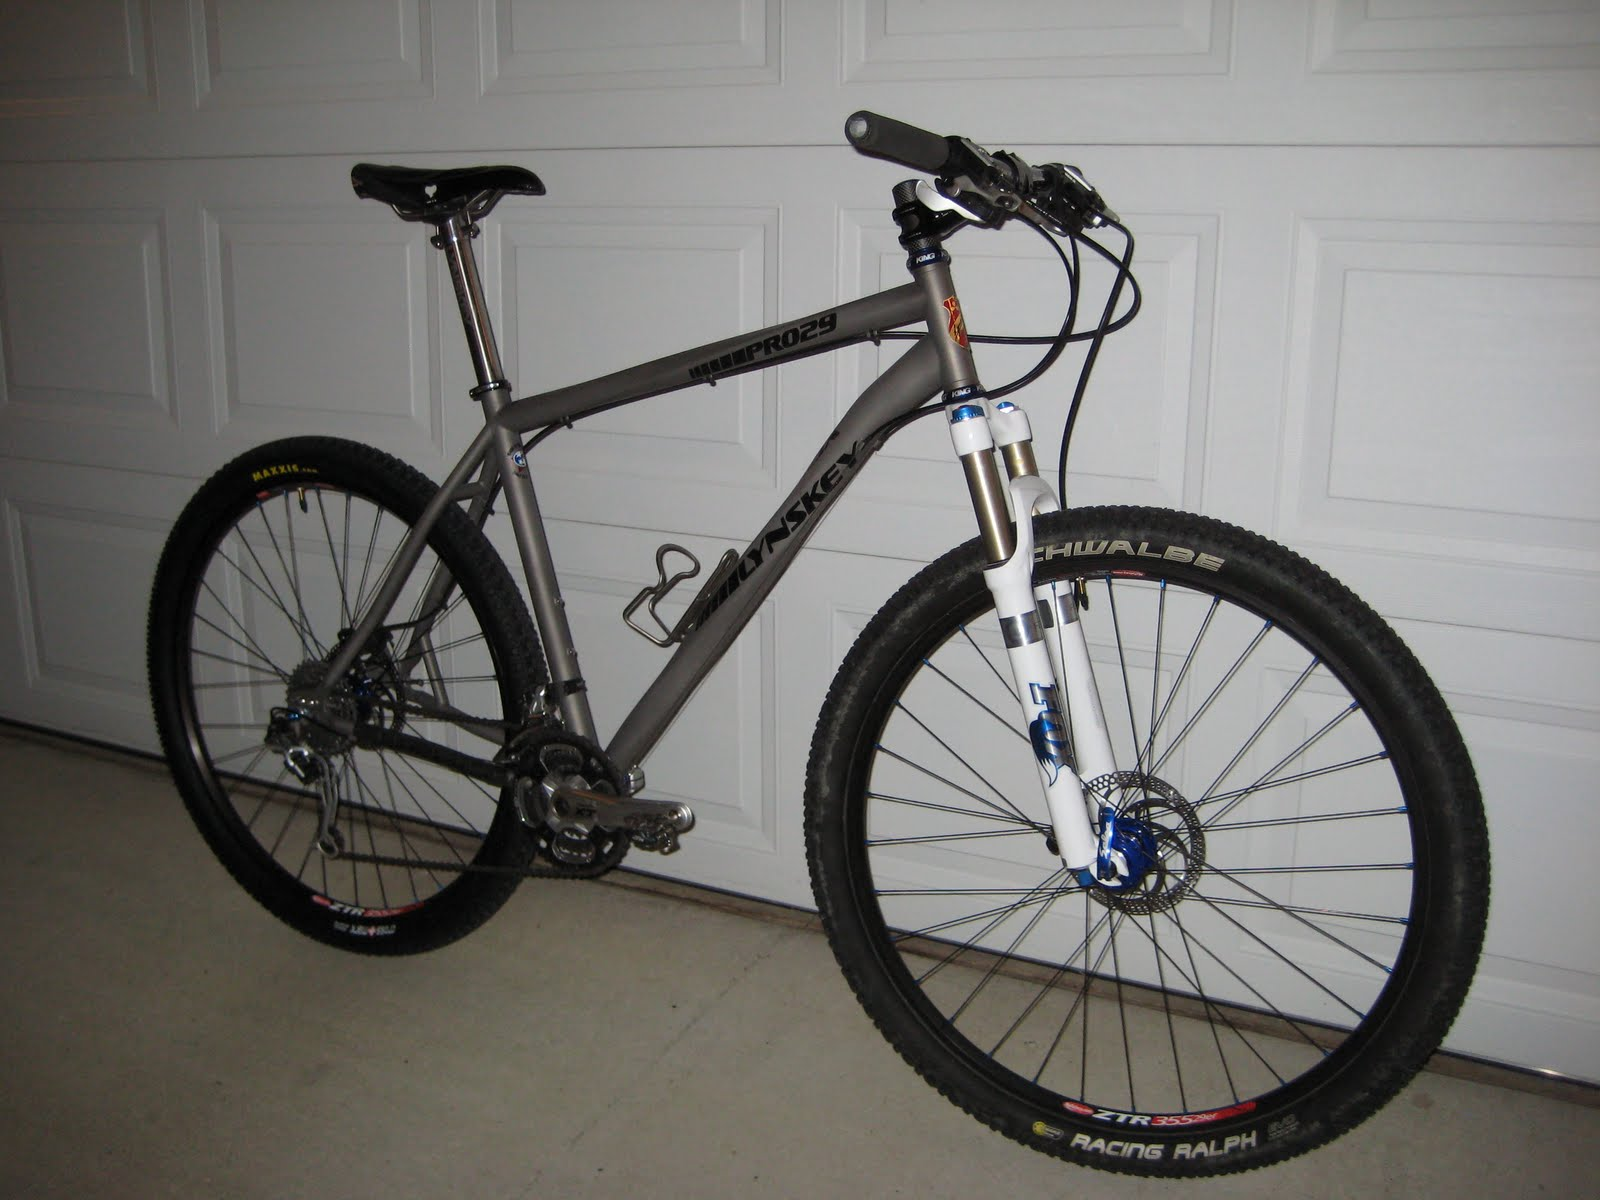 Craigslist Omaha Bikes Call to Action Stolen Bike at